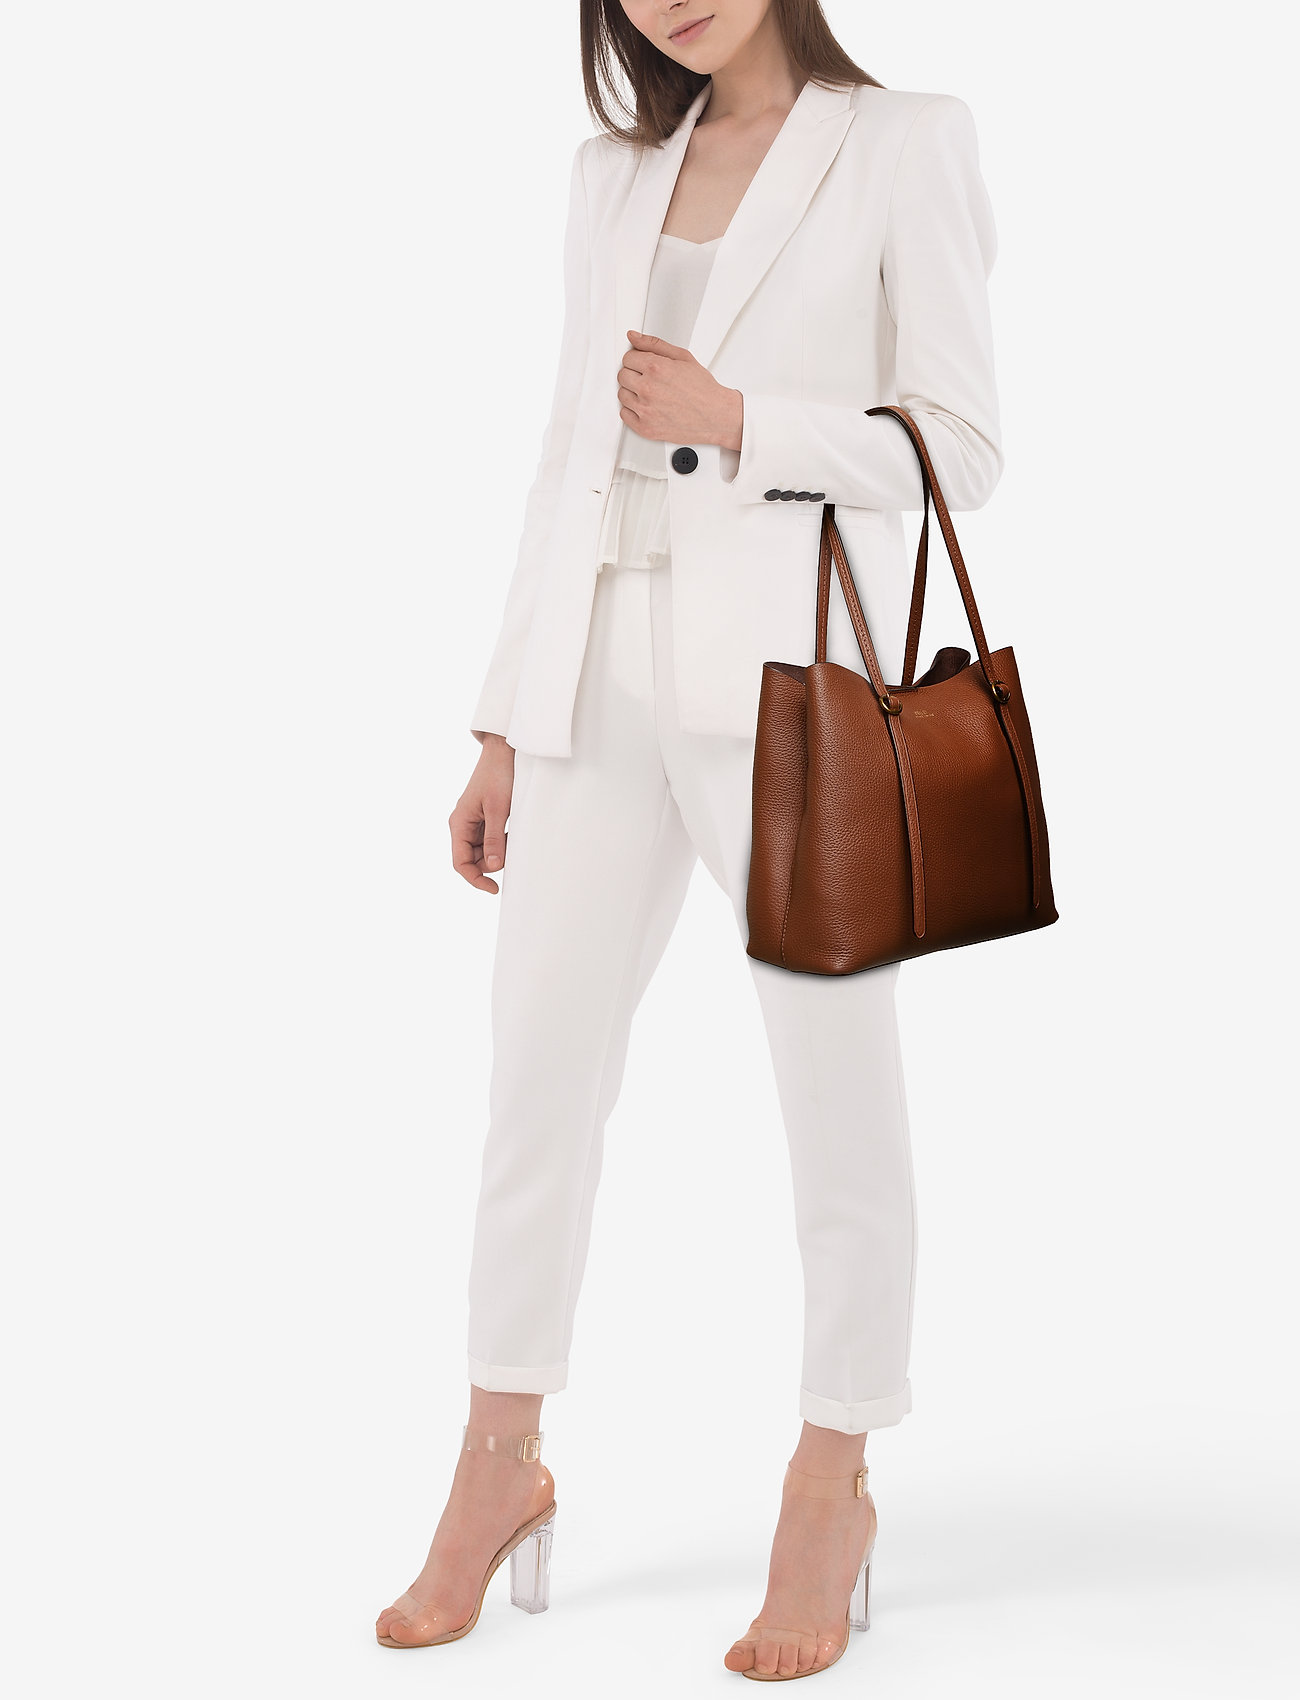 Polo Ralph Lauren Pebbled Leather Lennox Tote - SADDLE